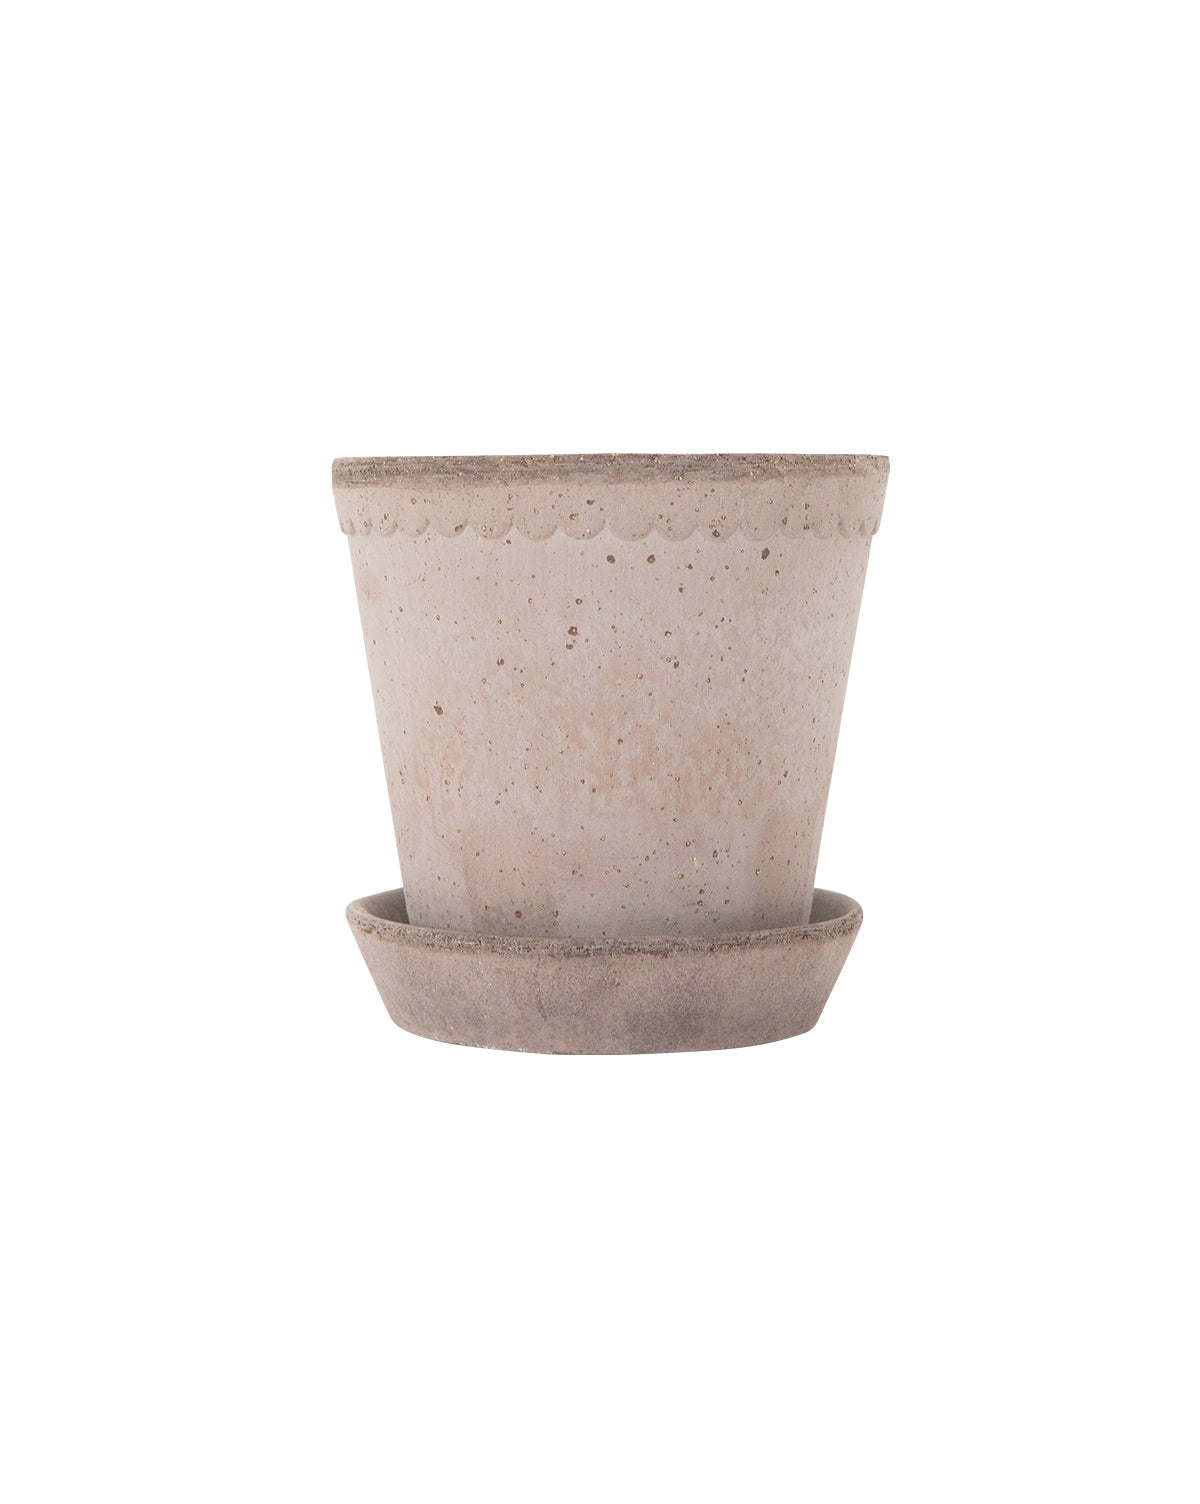 Scalloped Edge Pot